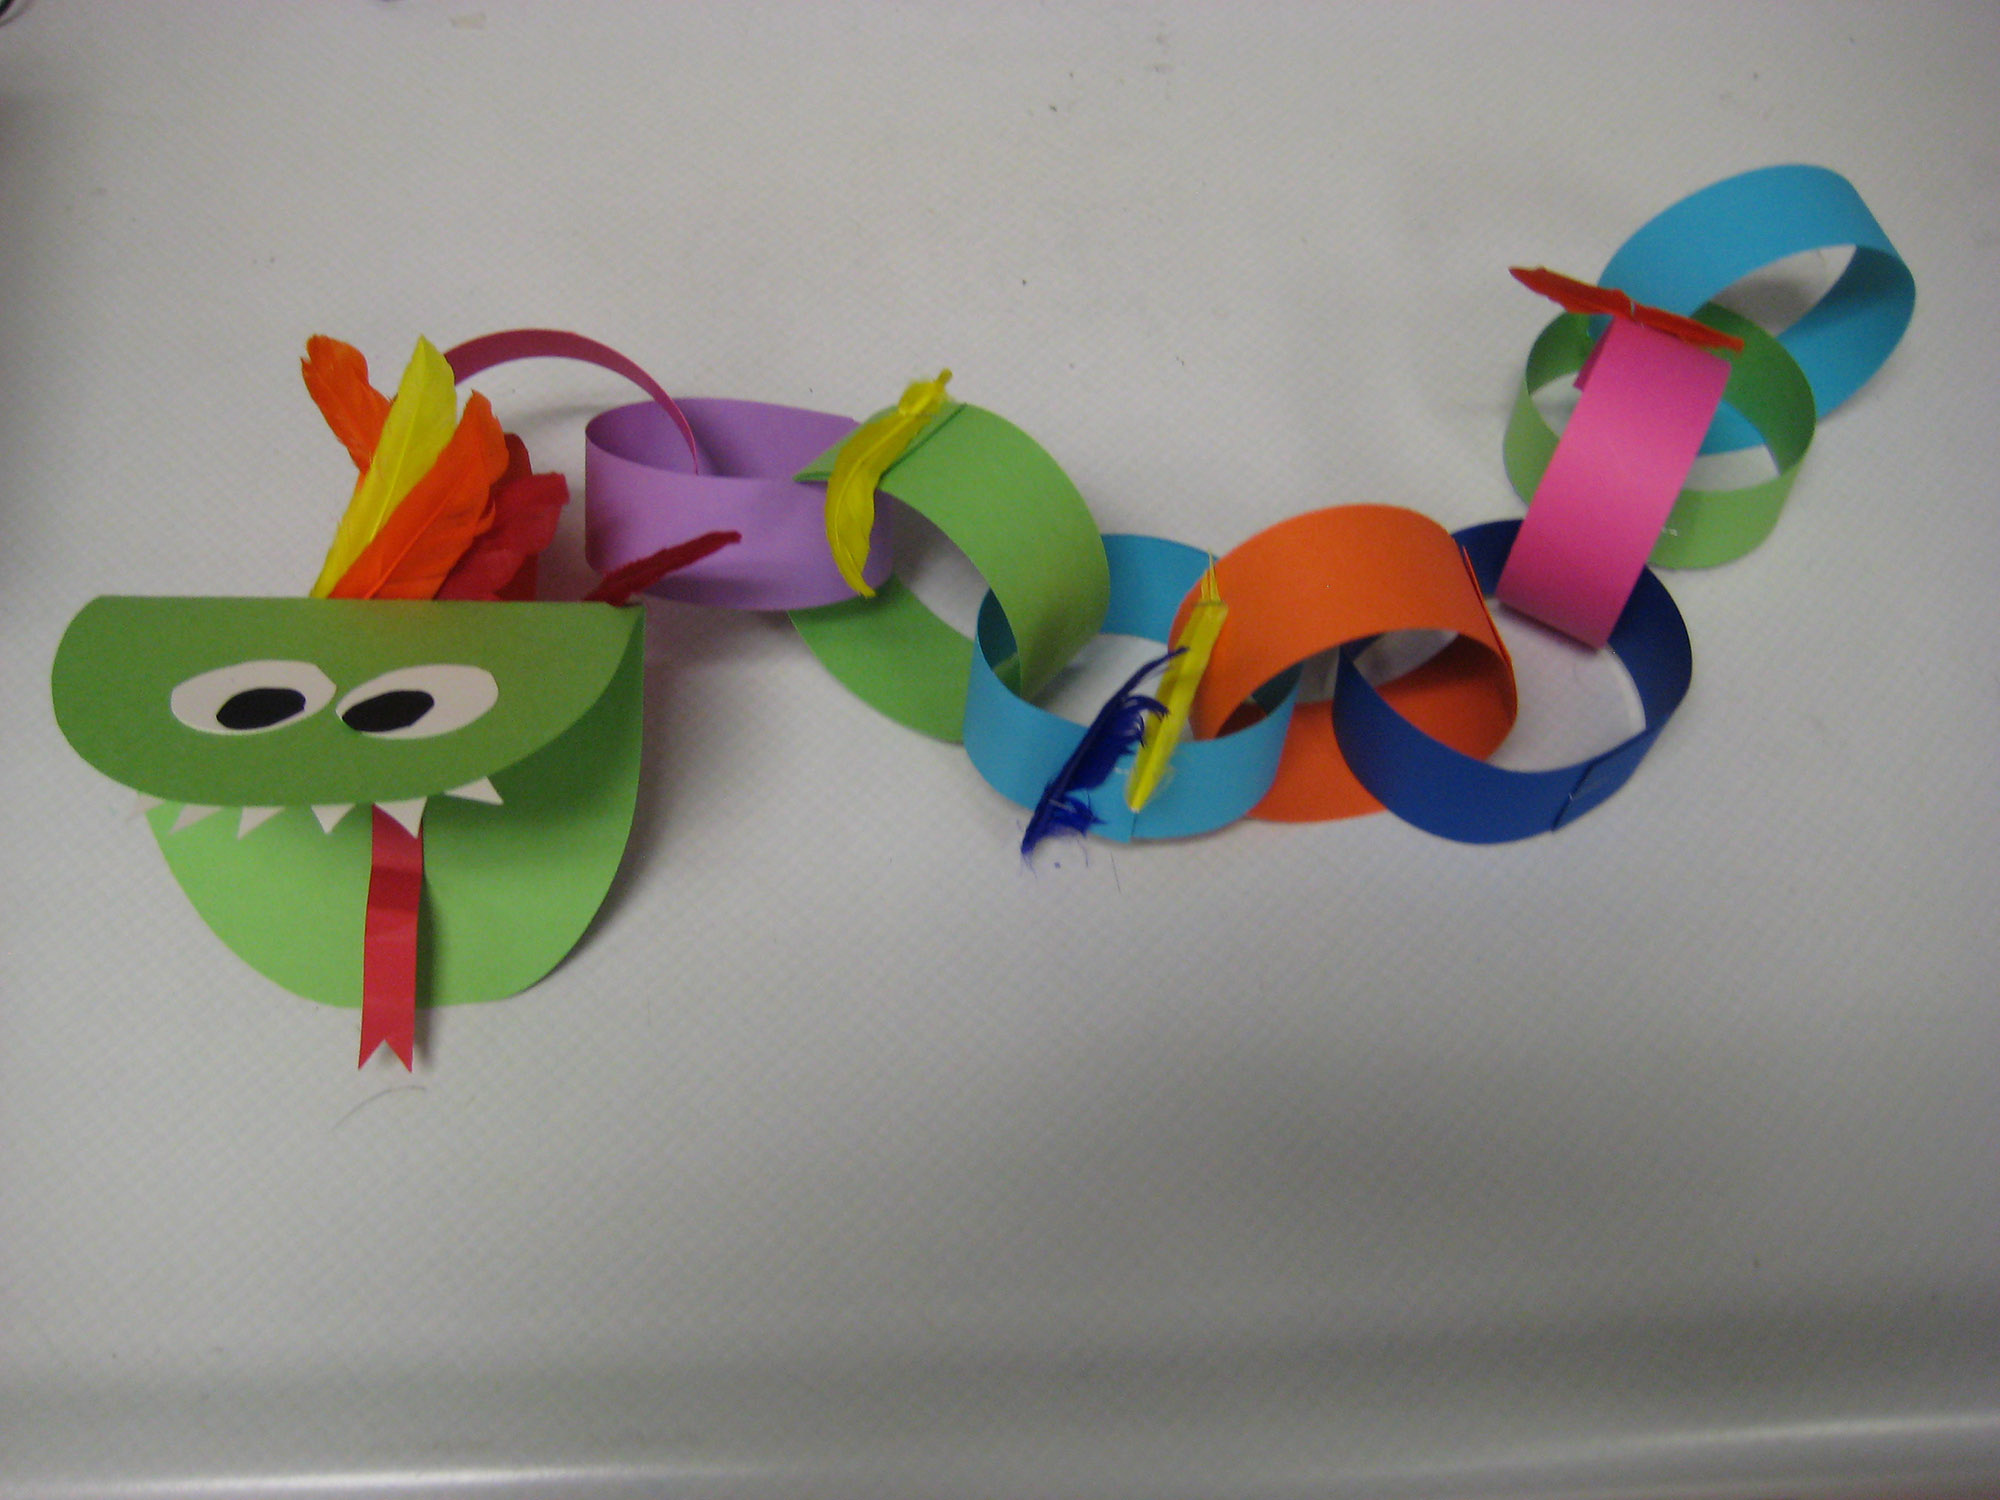 a cute colorful craft that your students will love to create for new year celebrations